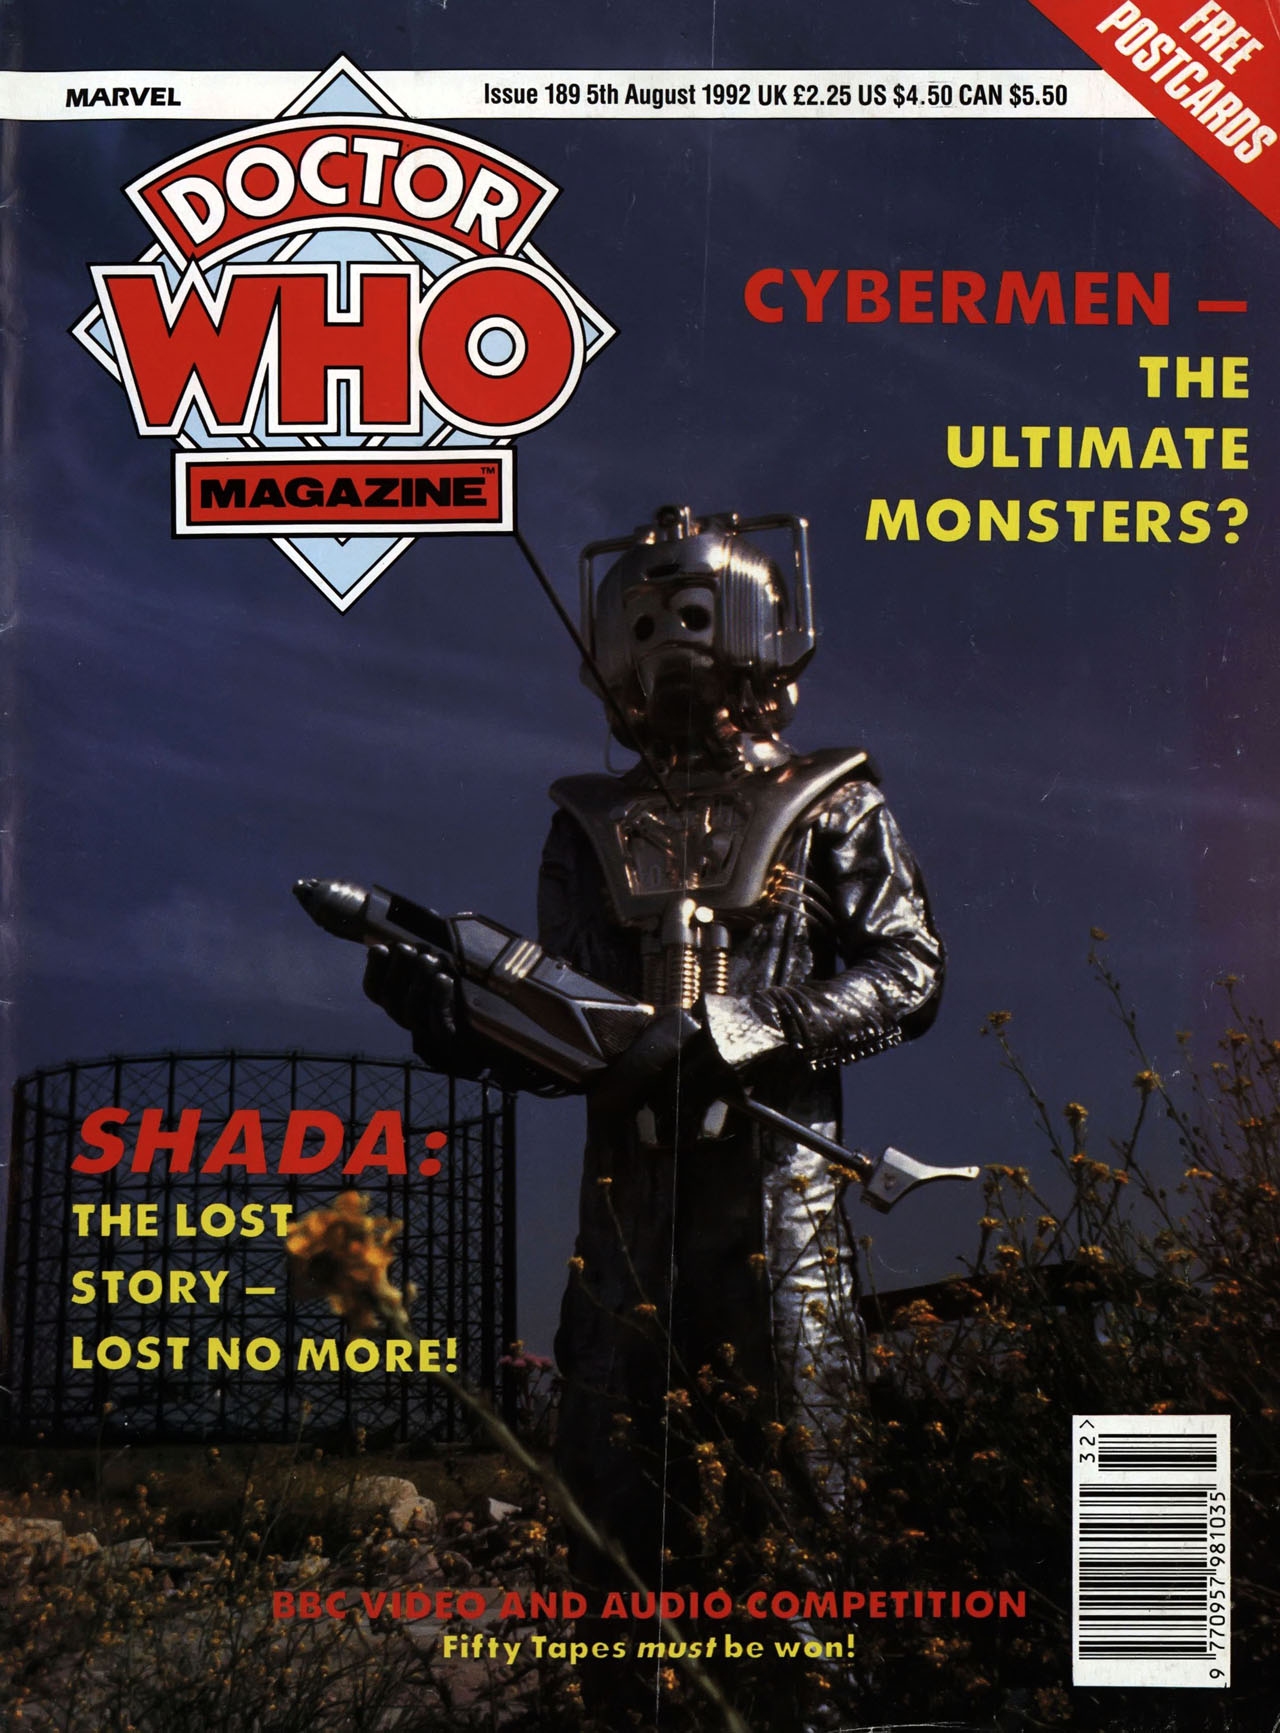 Doctor Who Magazine Vol 1 189